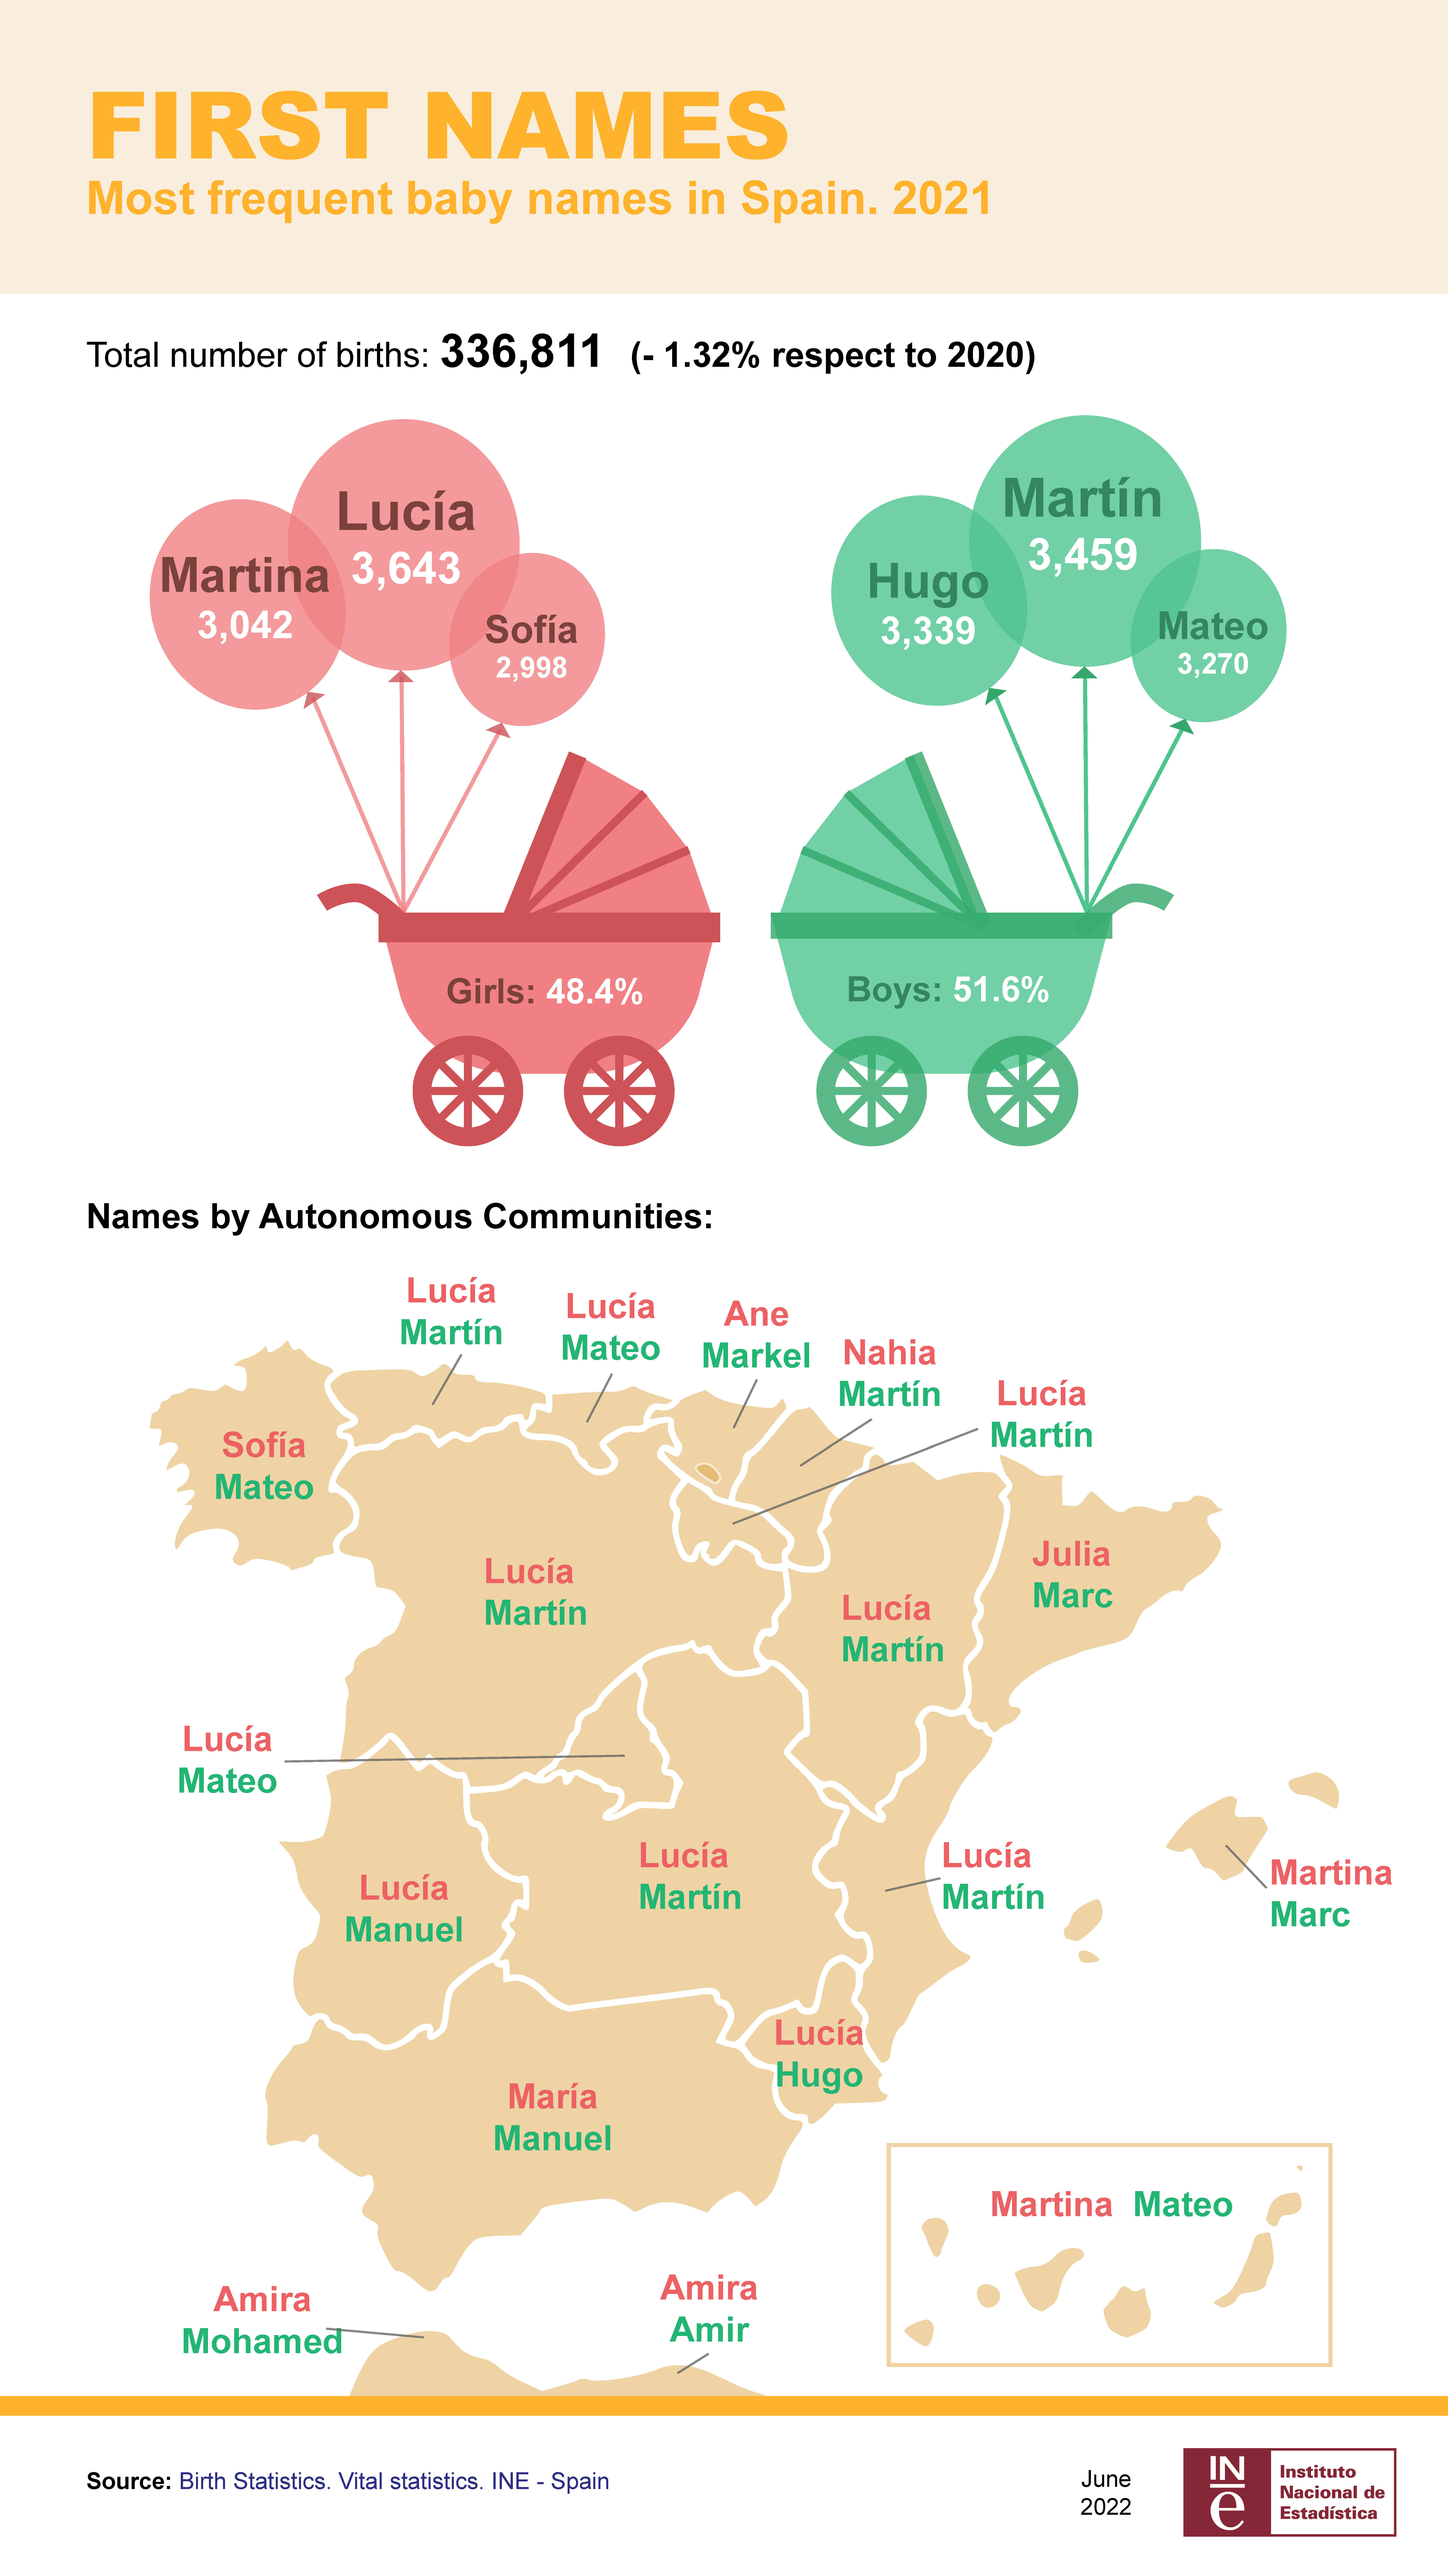 Most frequent baby names in Spain